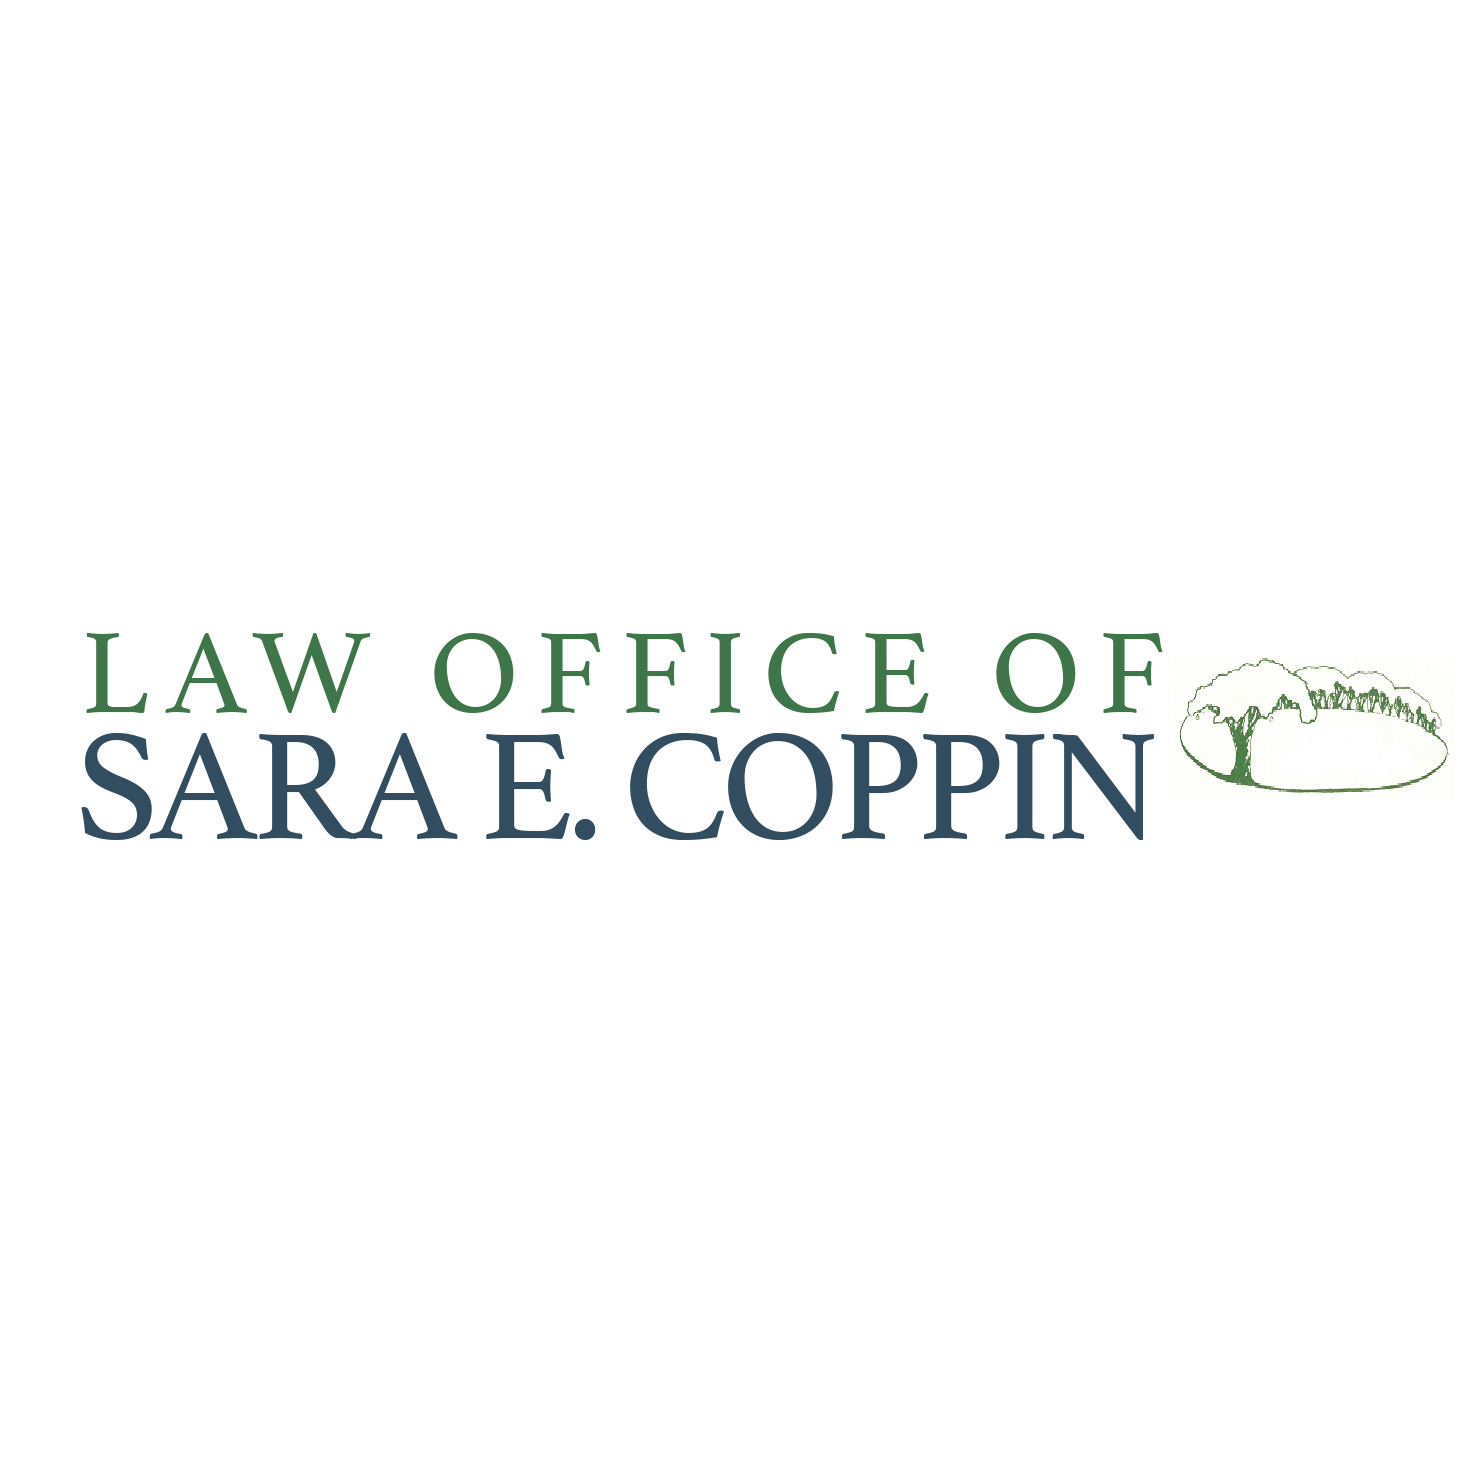 Law Office of Sara E. Coppin - Grass Valley, CA 95945 - (530)401-6891 | ShowMeLocal.com